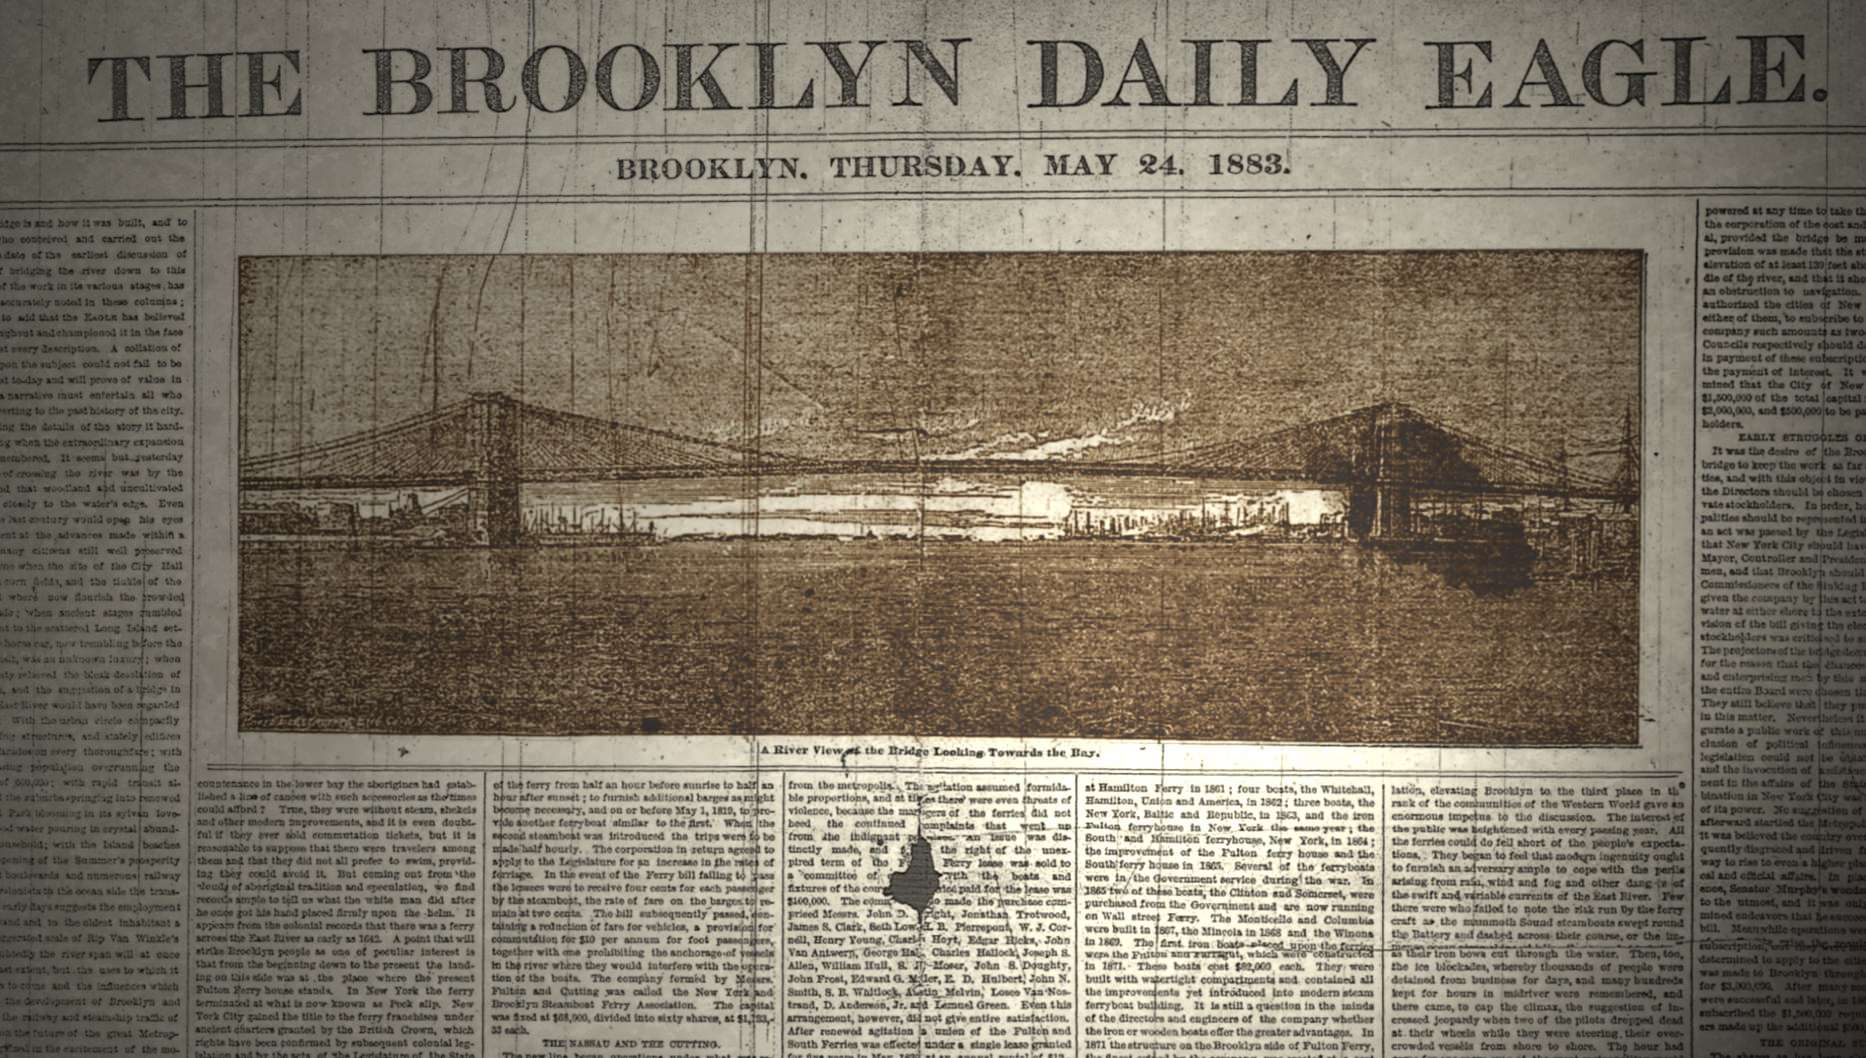 The Brooklyn Daily Eagle: Once among the most influential newspapers in the U.S.